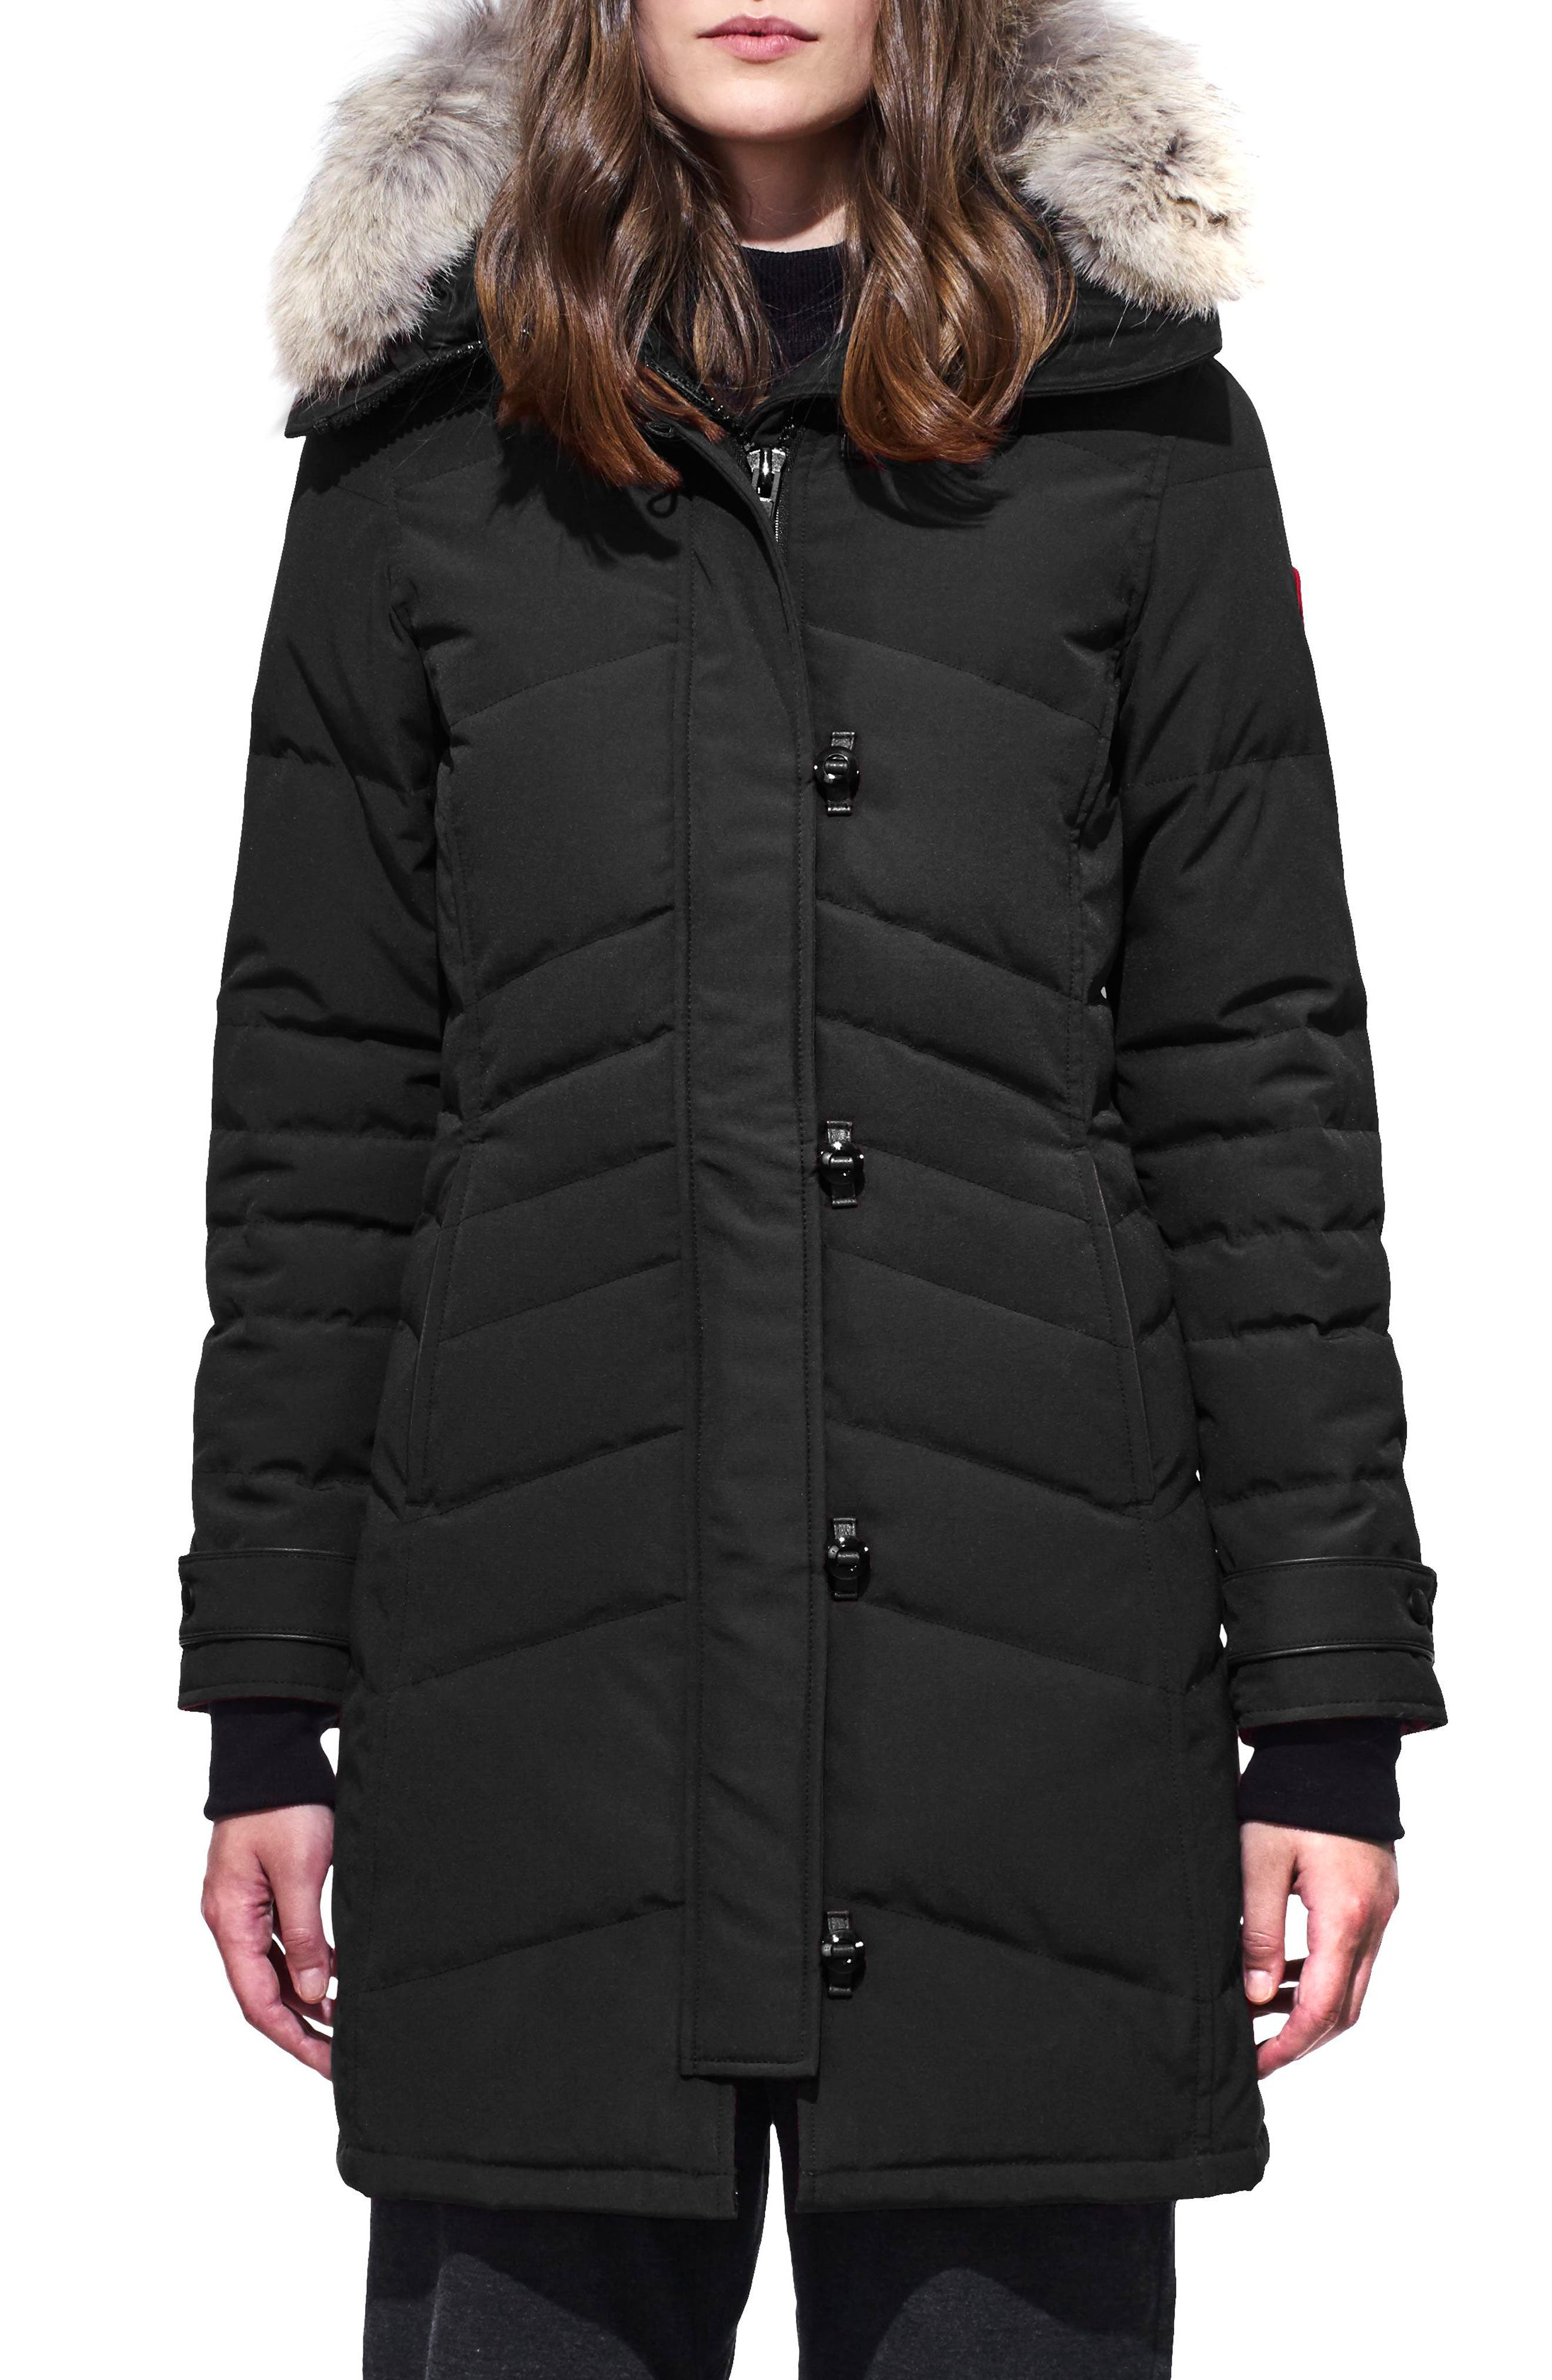 Lorette Fusion Fit Hooded Down Parka with Genuine Coyote Fur Trim,                             Main thumbnail 1, color,                             001